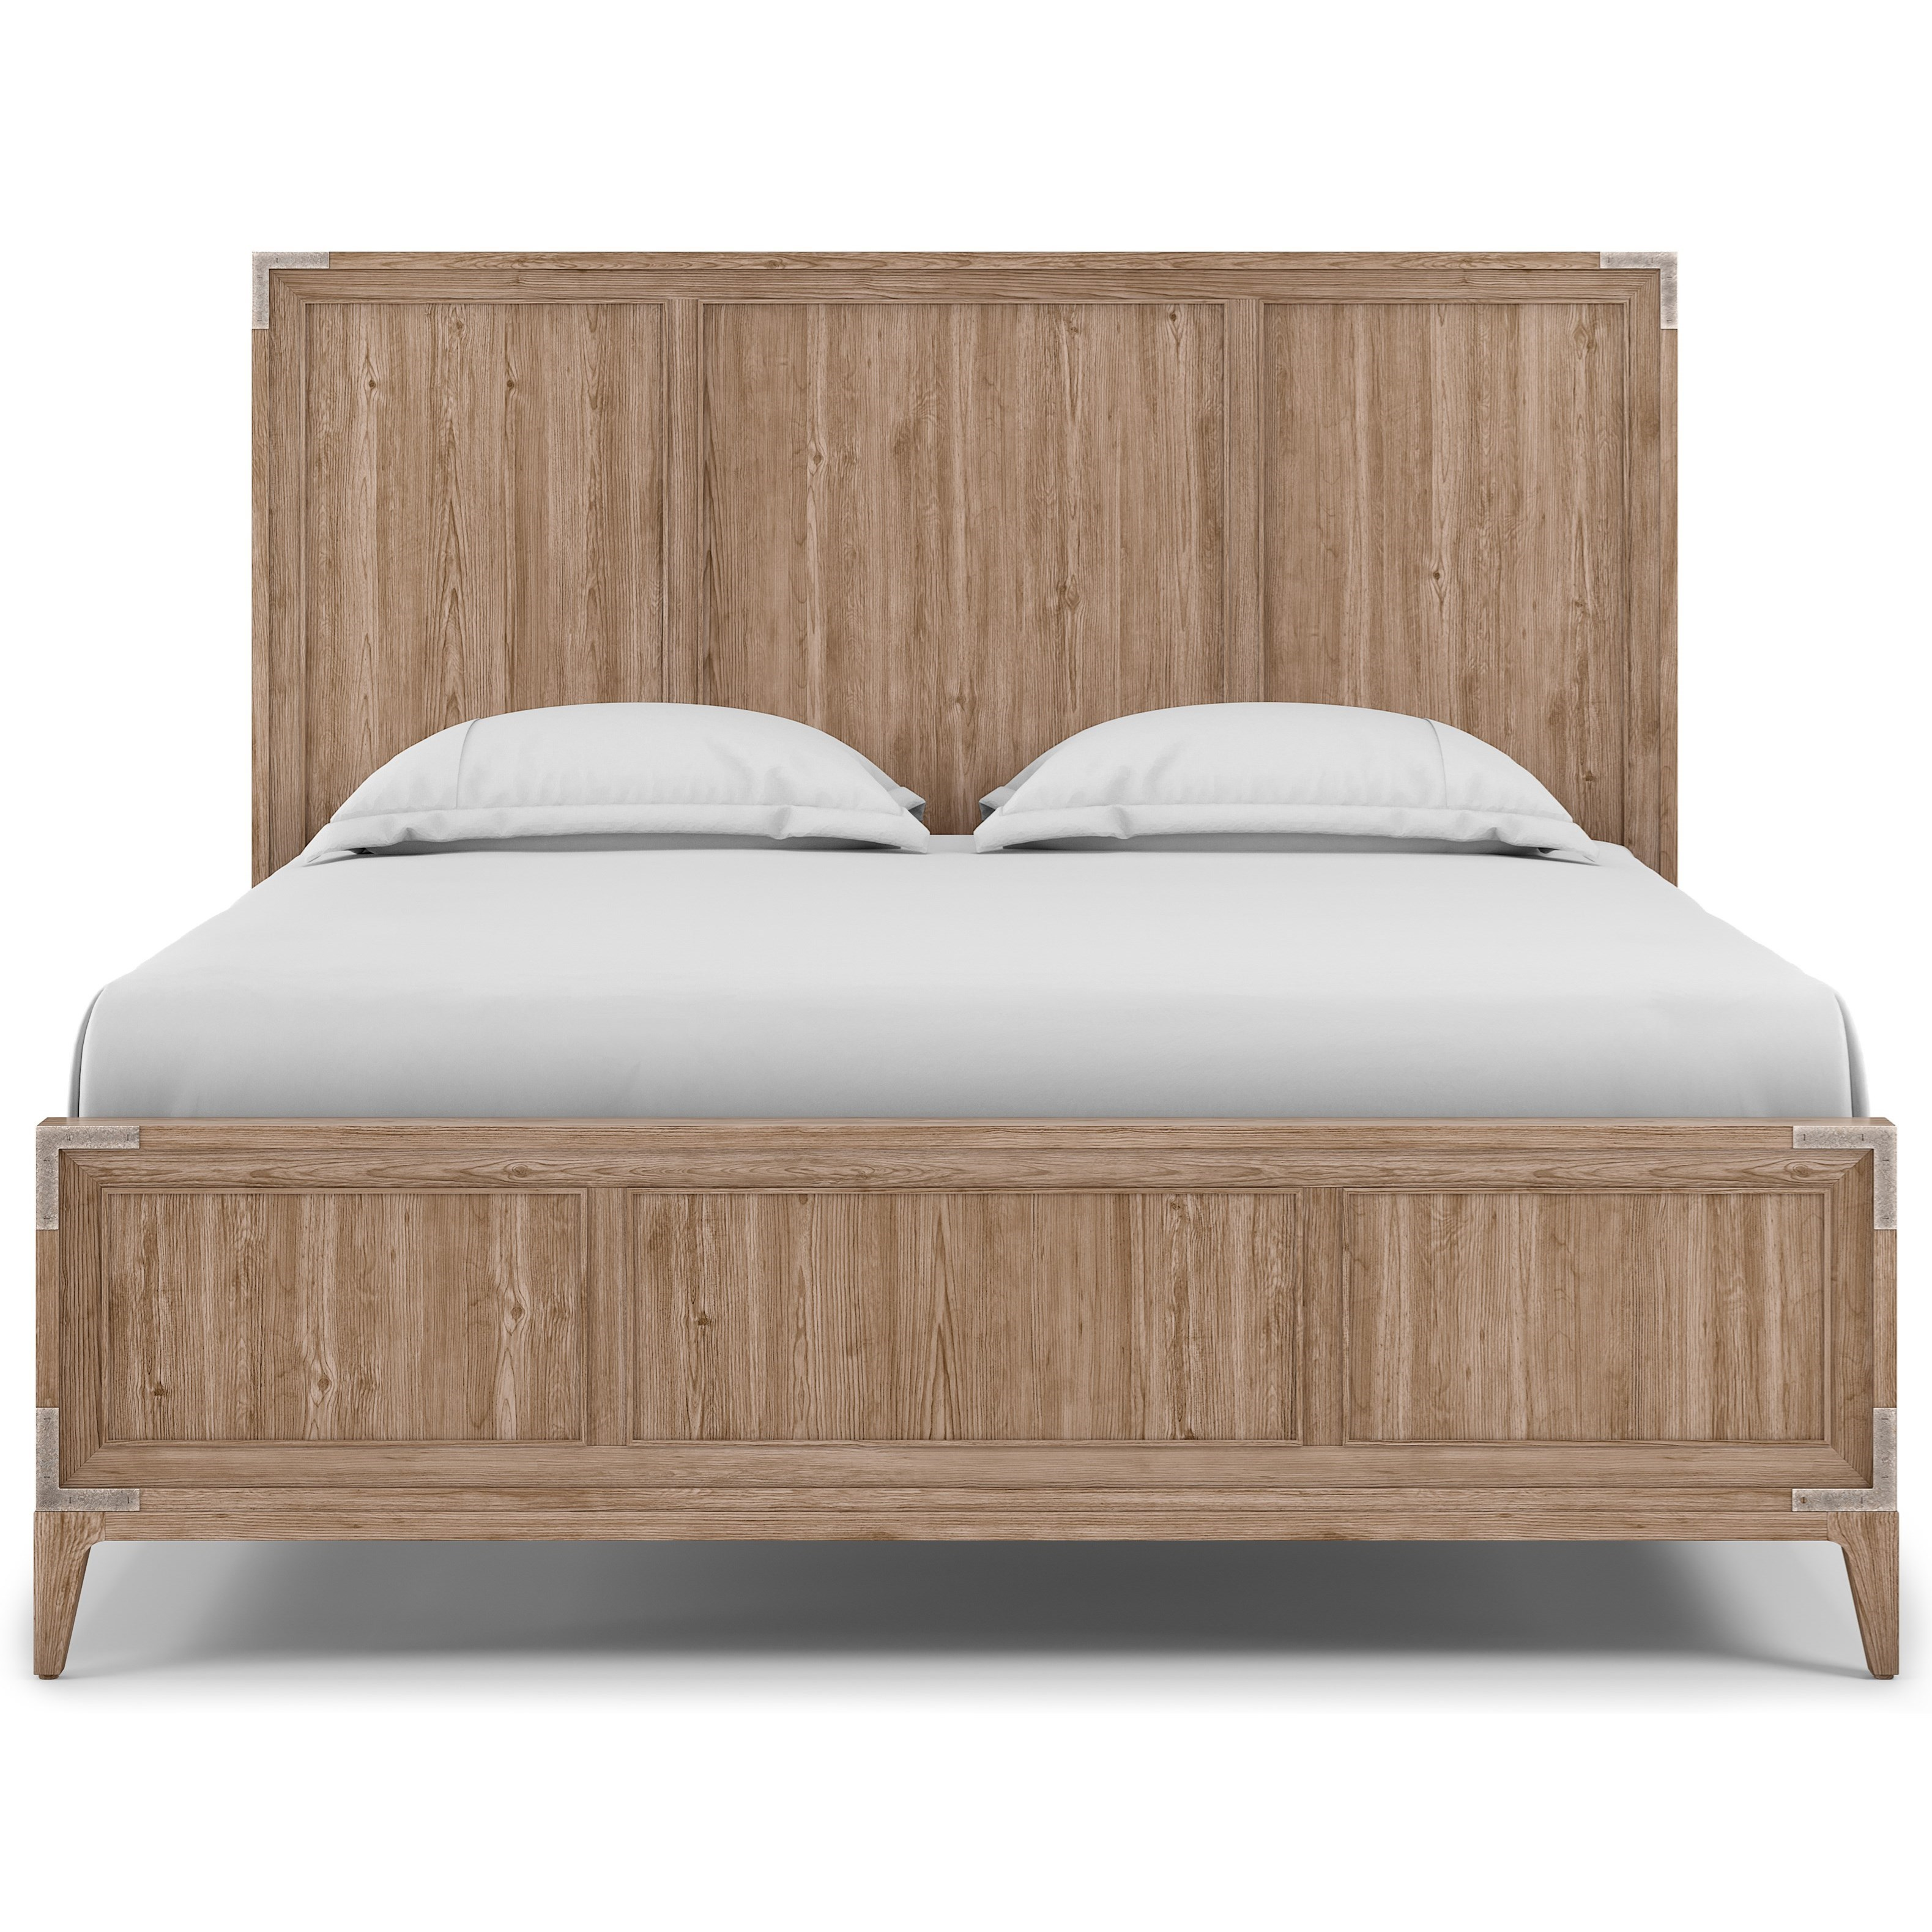 Passage King Bed by A.R.T. Furniture Inc at C. S. Wo & Sons California